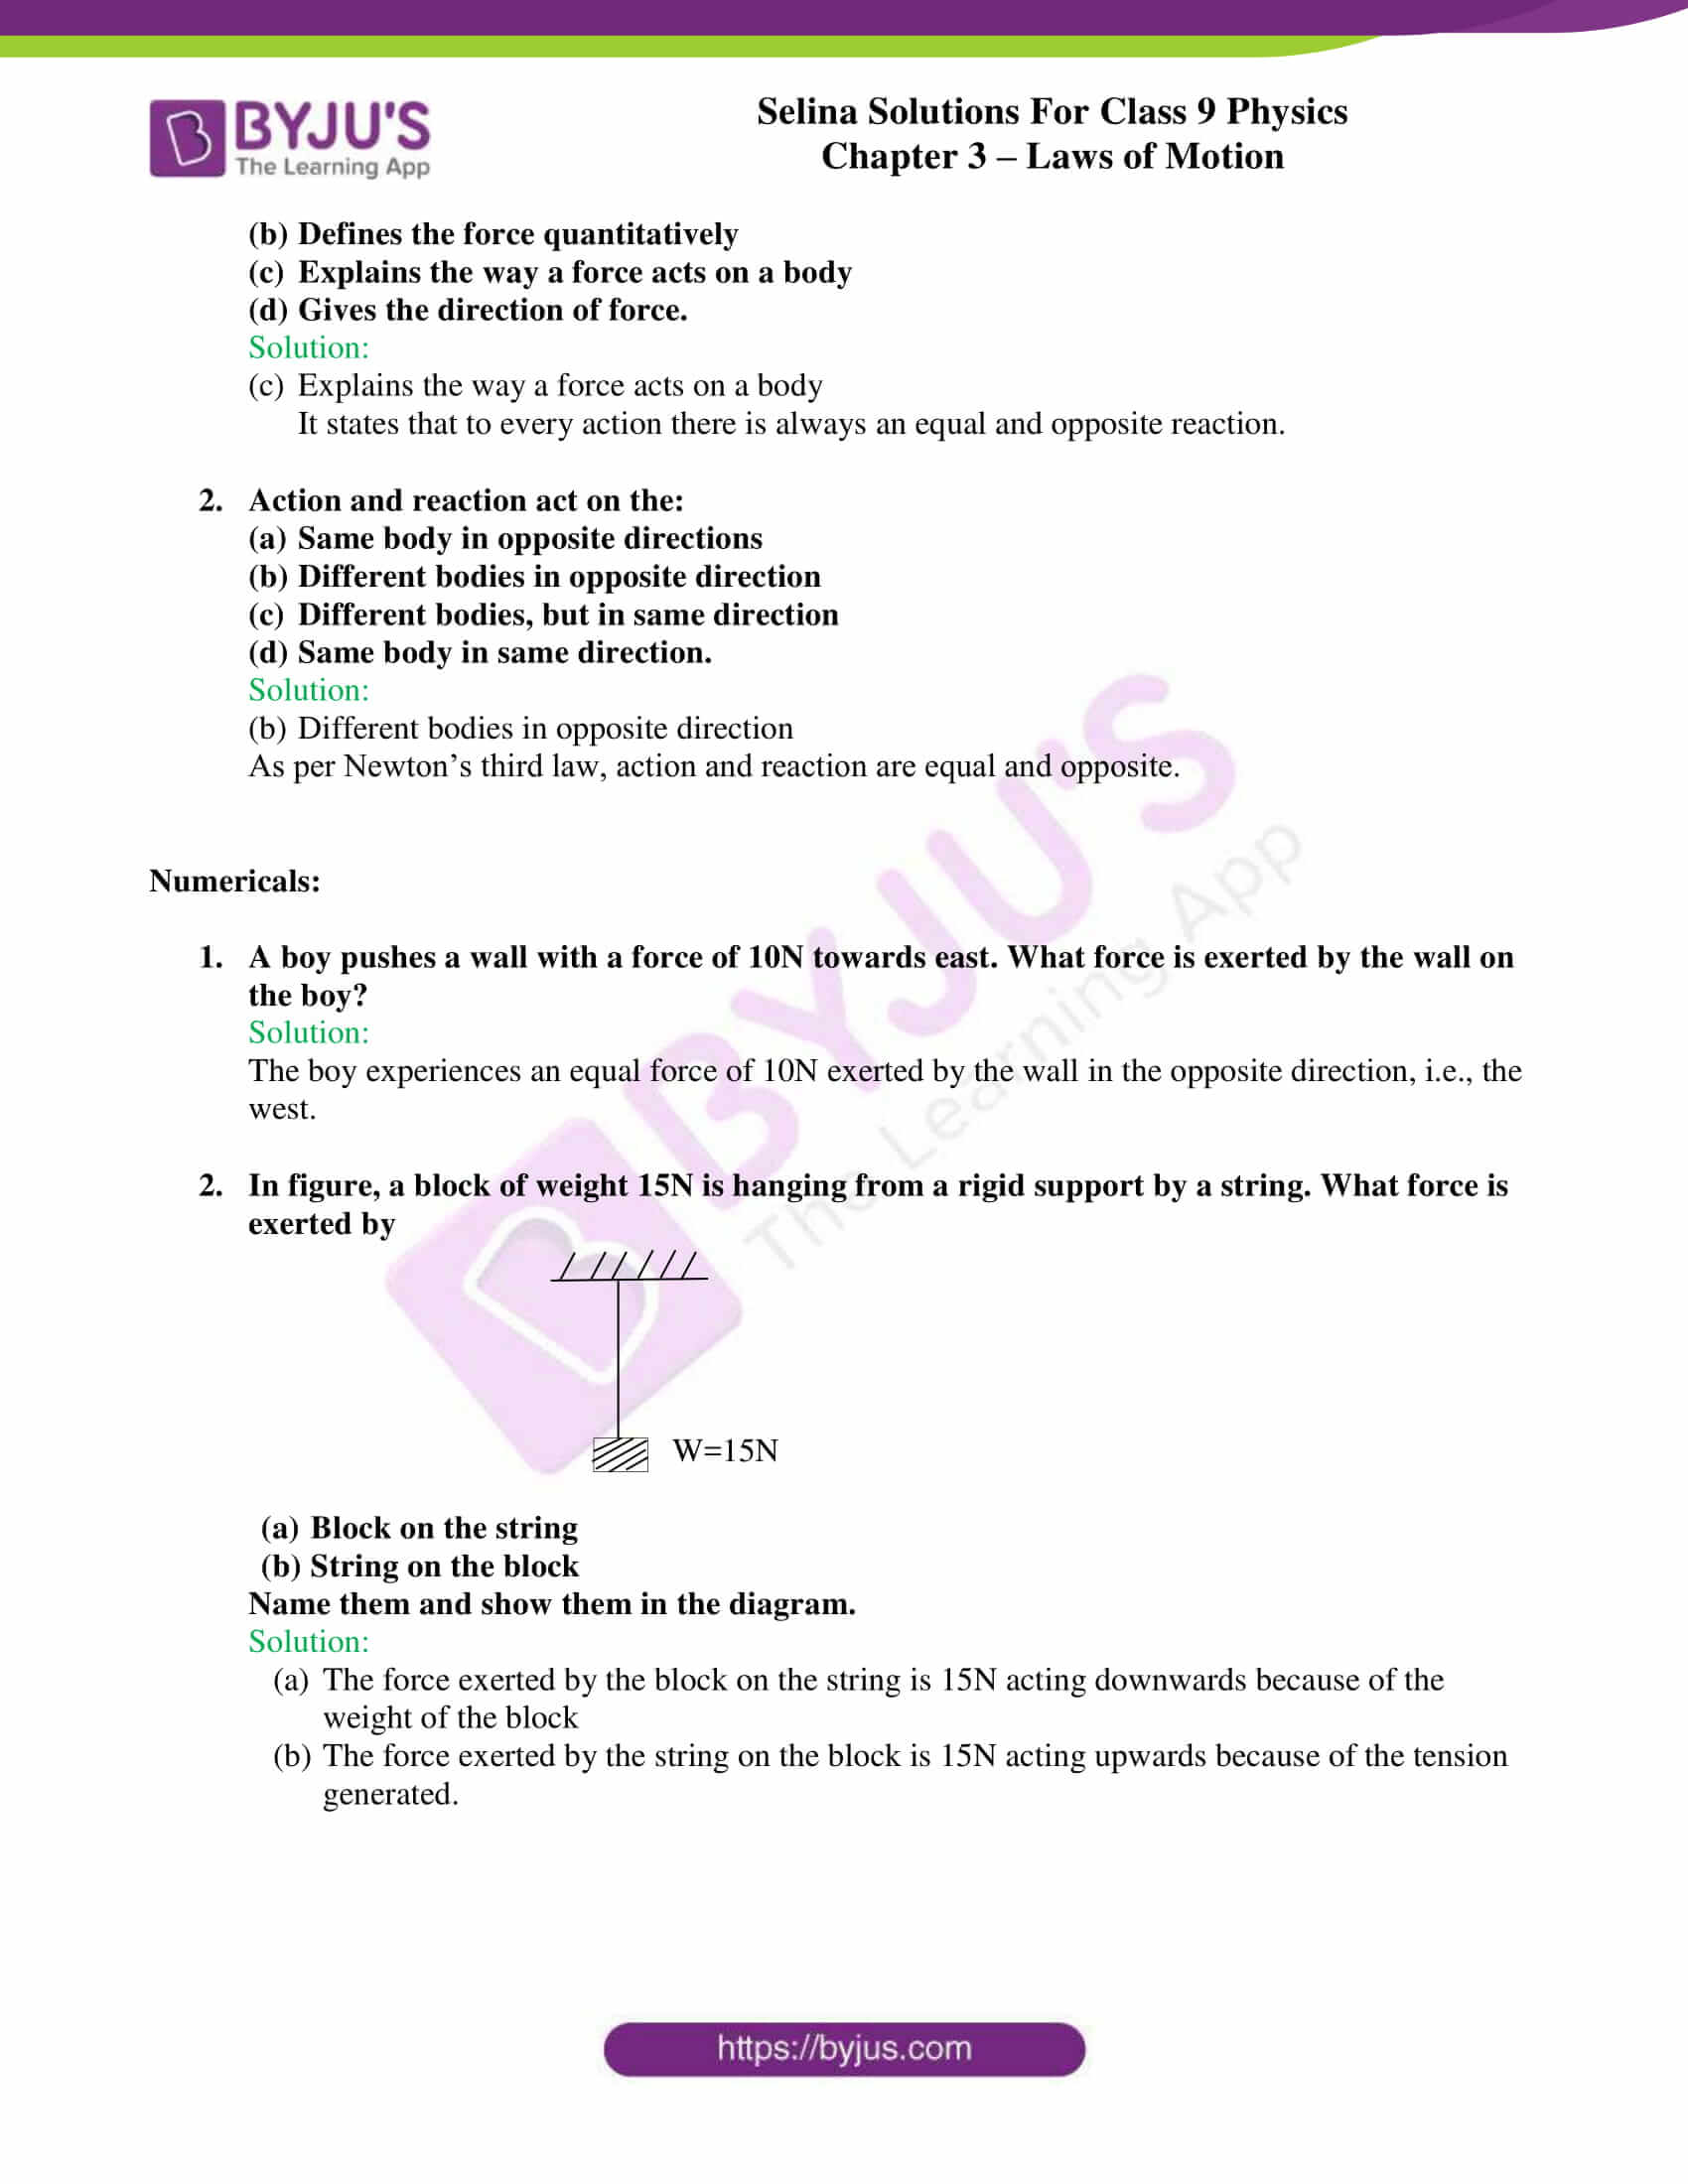 selina solutions class 9 physics chapter 3 Laws of Motion part 25